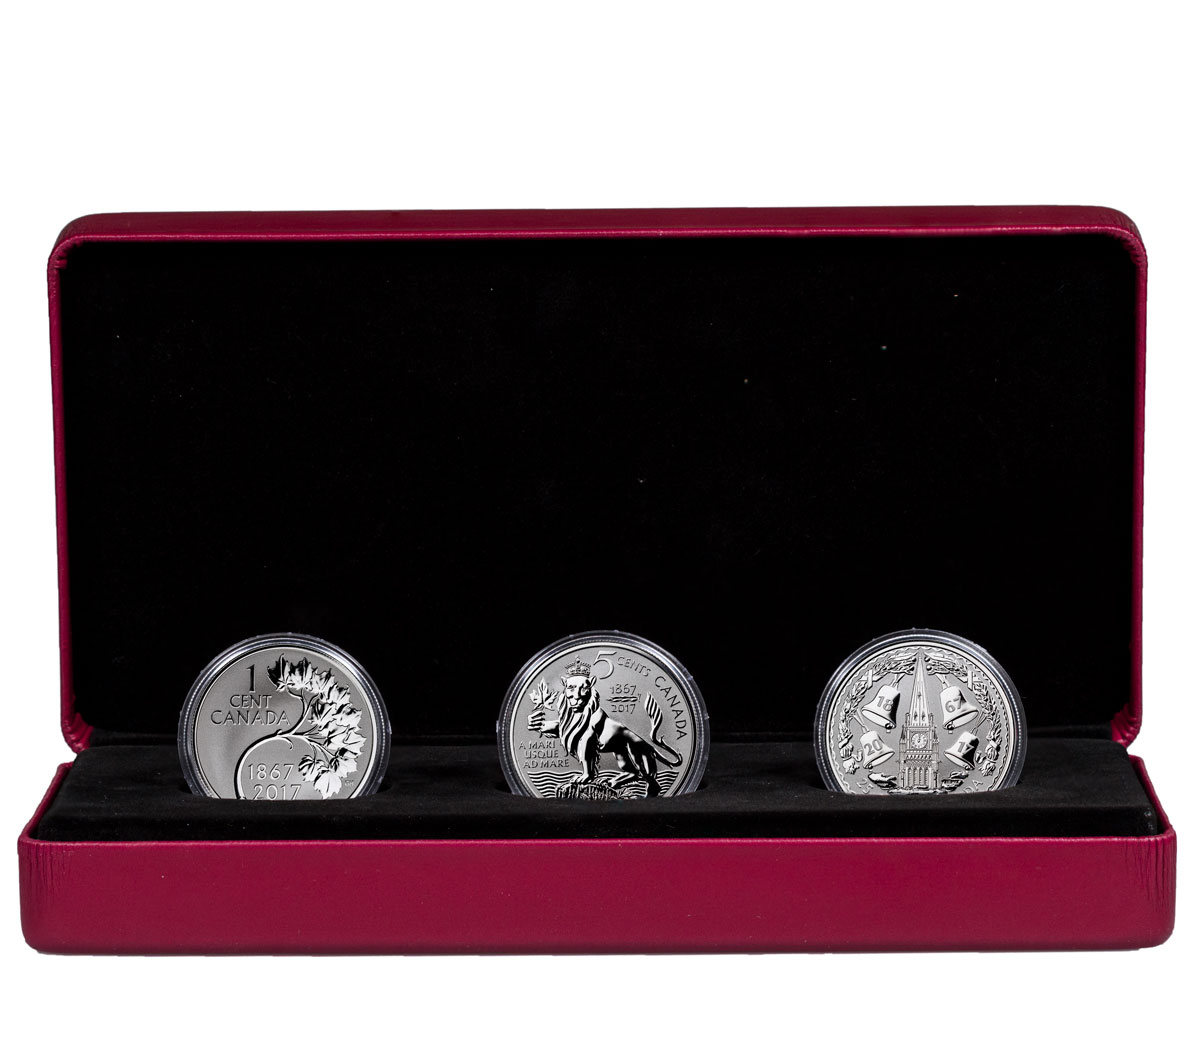 2017 Canada Coin Lore - The Forgotten 1927 Designs 3-Coin Set 1 oz Silver Reverse Proof Coin GEM Reverse Proof OGP